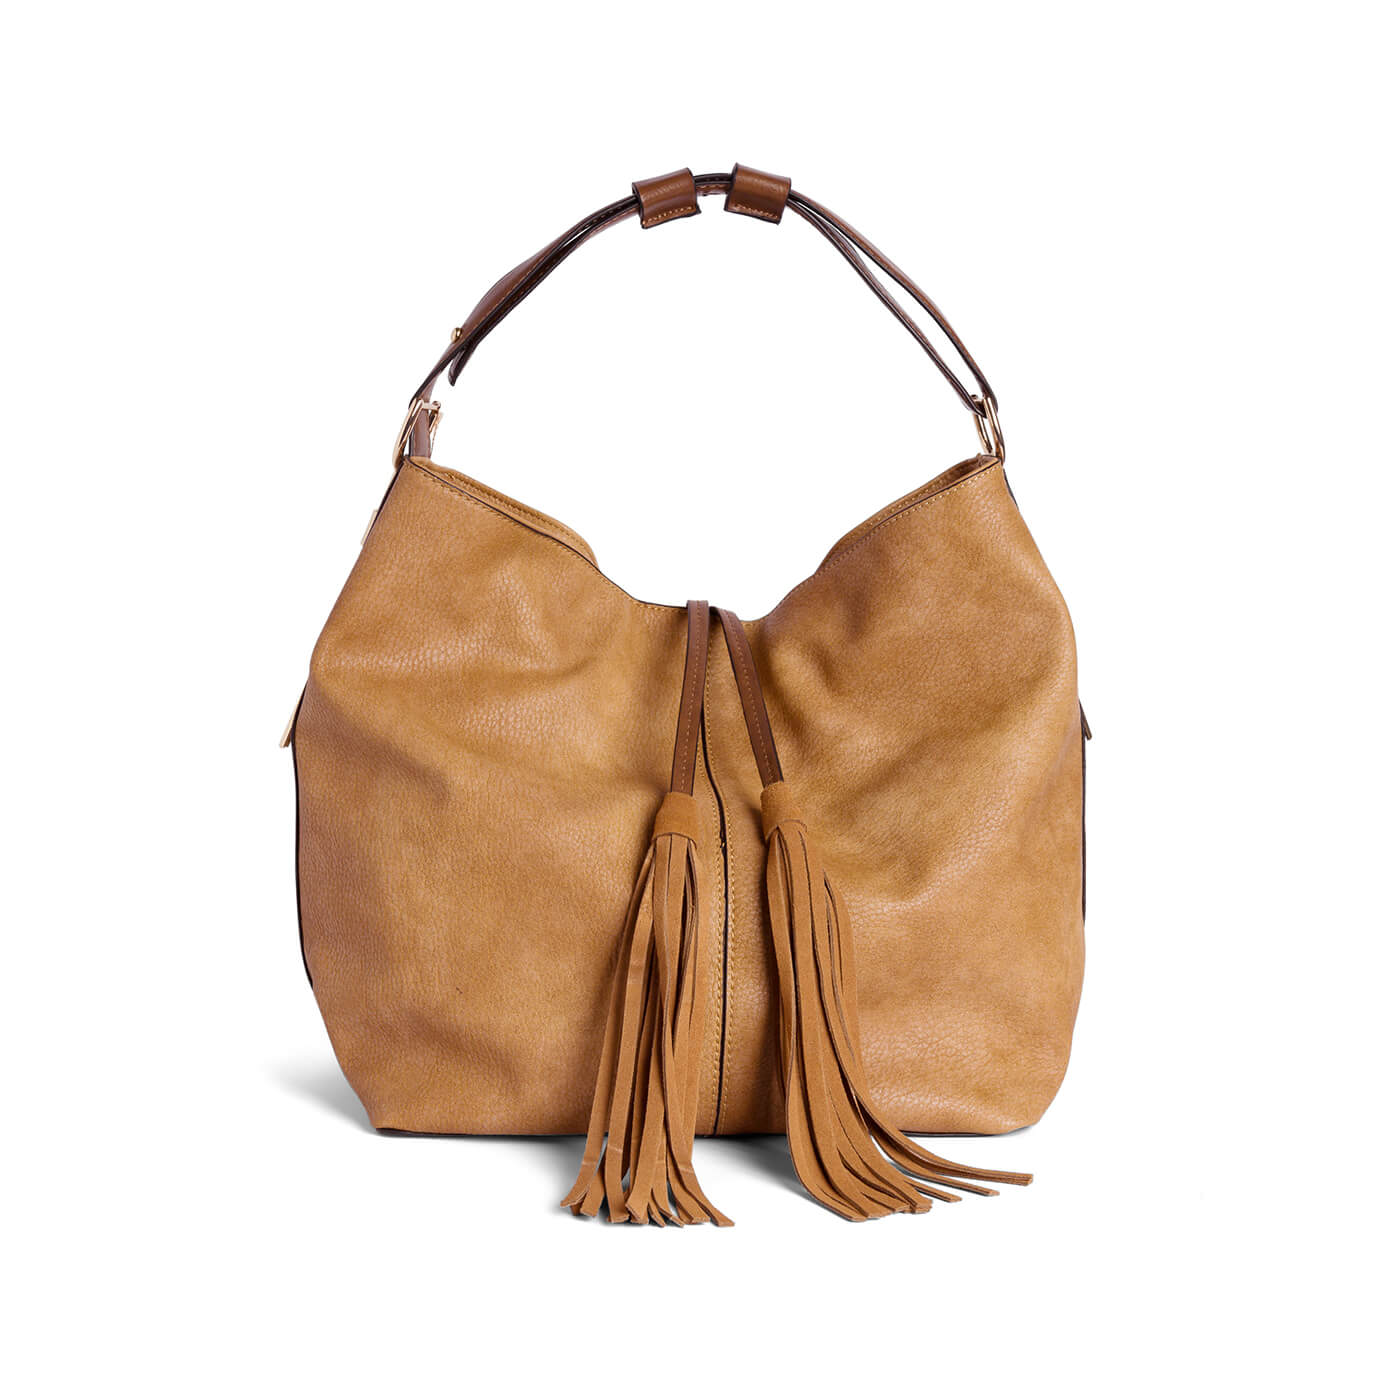 Stitch Fix: Fall Handbag Trends 2016